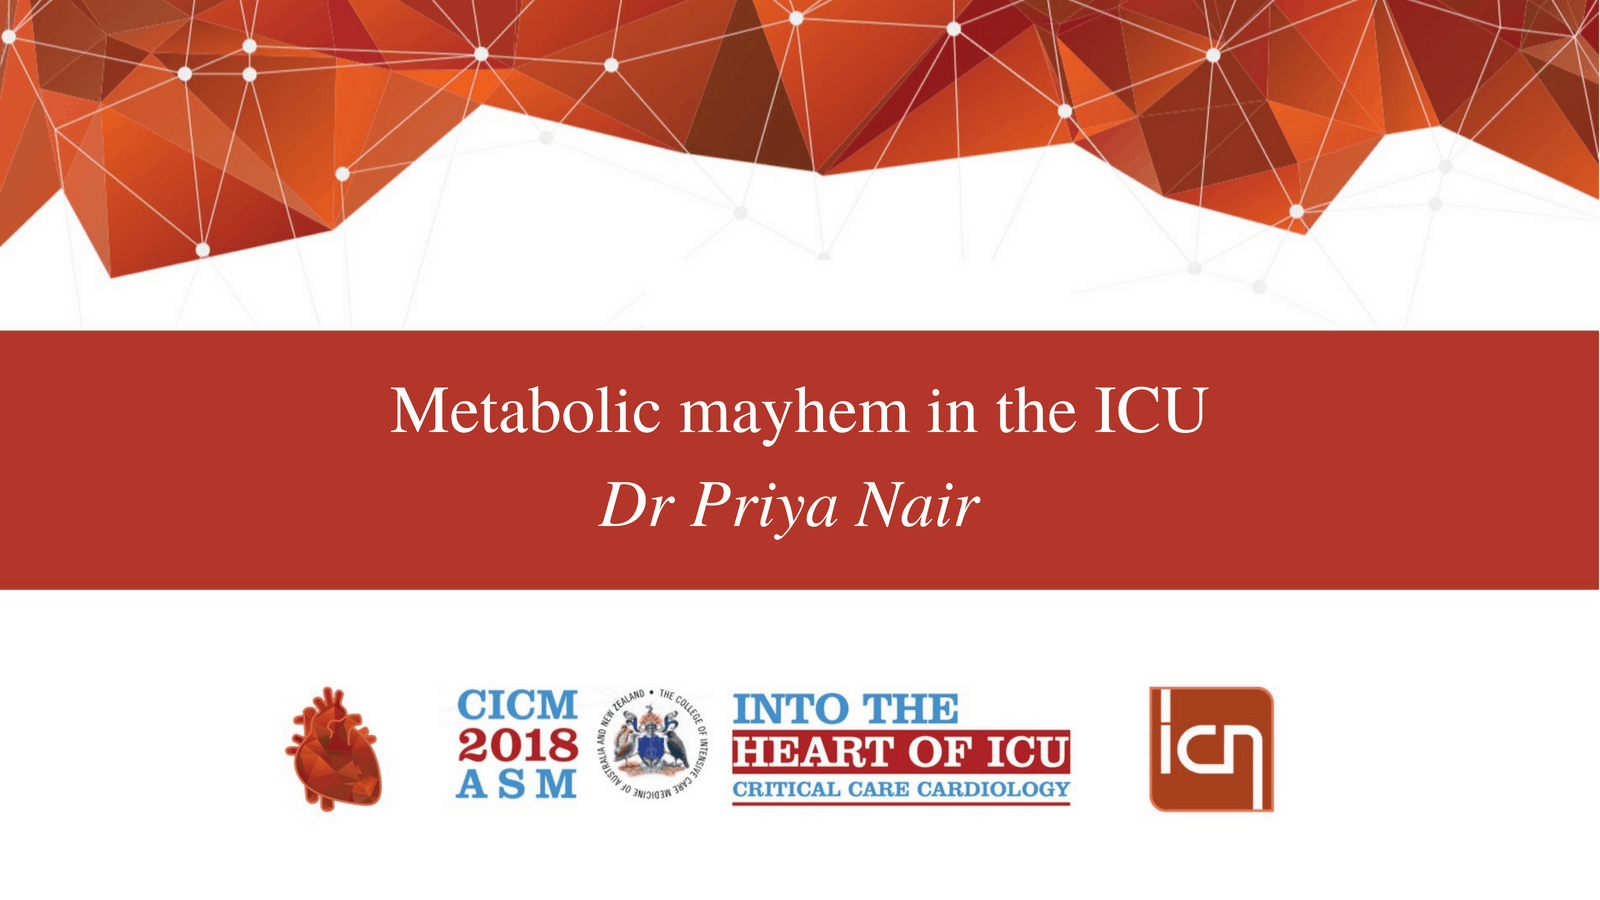 Metabolic mayhem in the ICU.